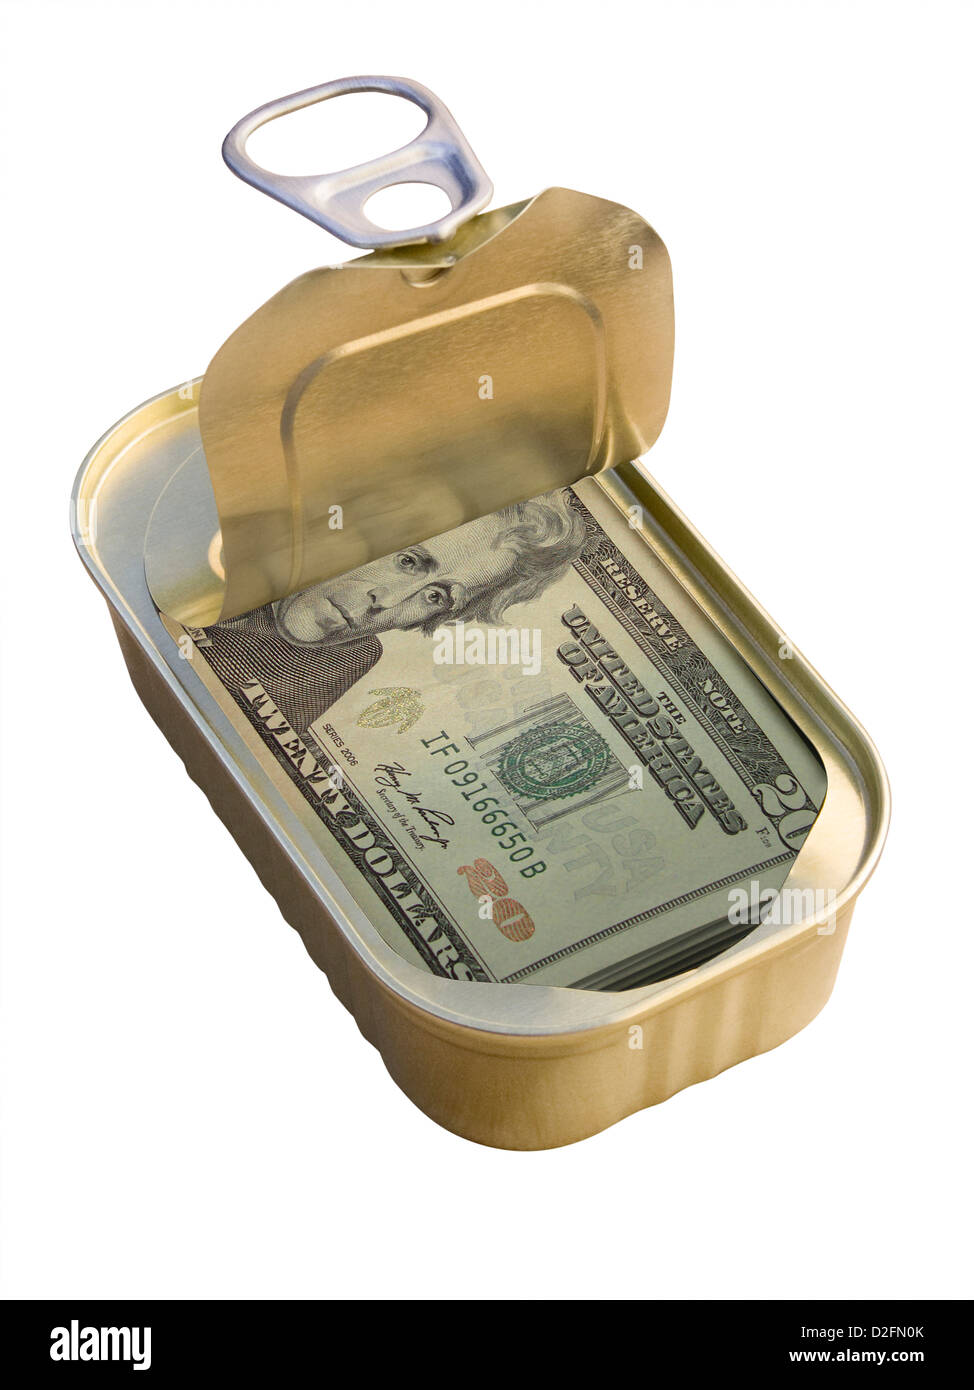 Ring Pull Tin containing 20 Dollar notes on white background - saving / hiding money concept - Stock Image